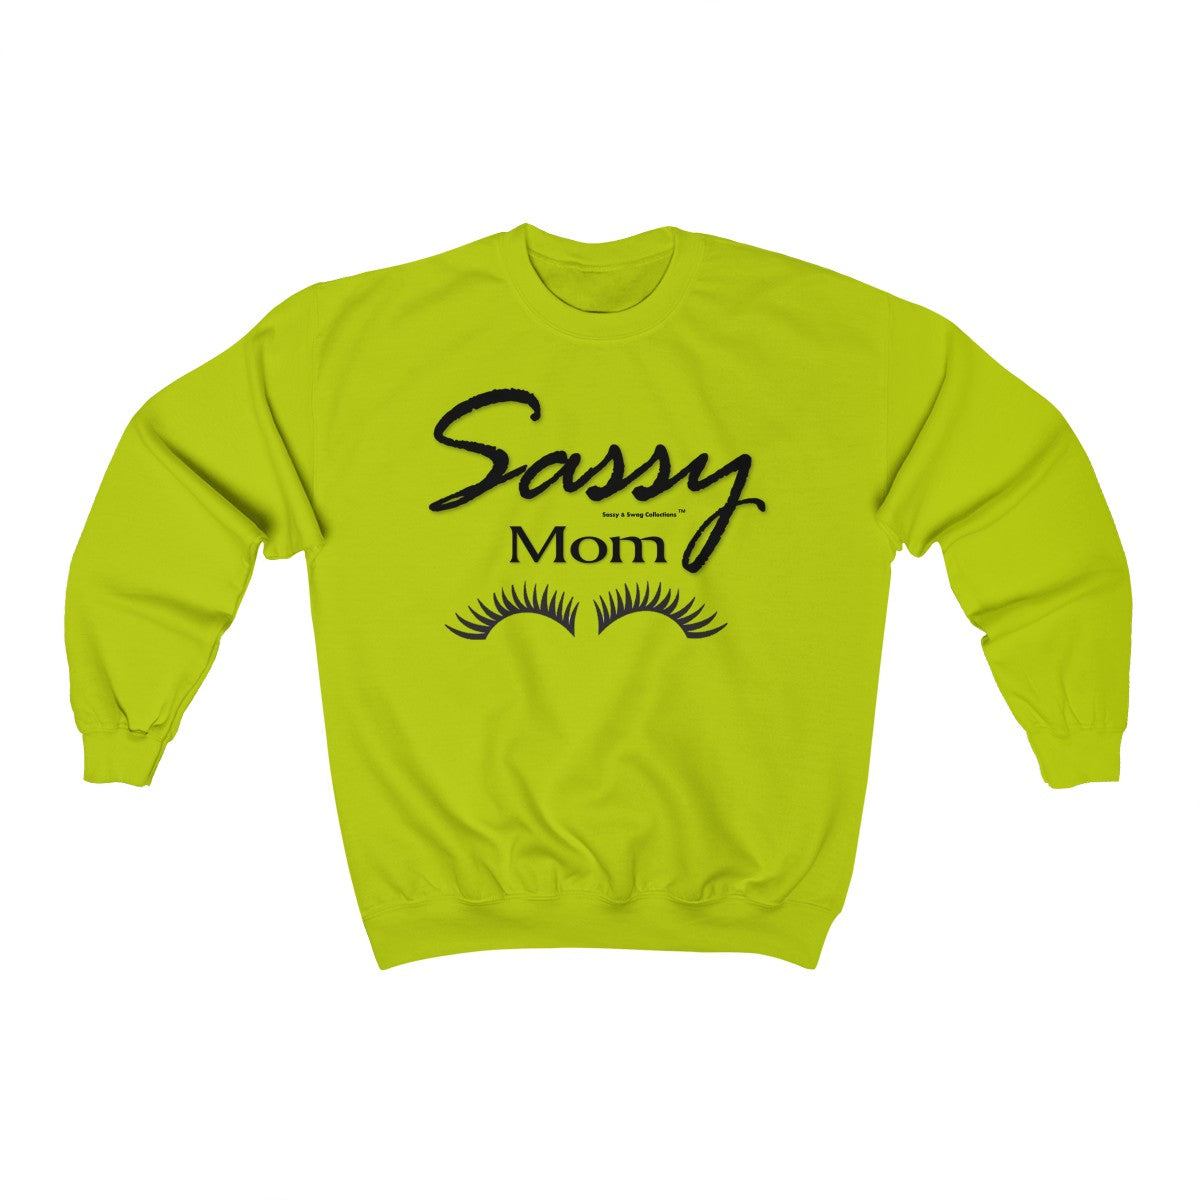 Sassy & Swag Collections - Sassy Mom with Eye Lashes Heavy Blend™ Crewneck Sweatshirt